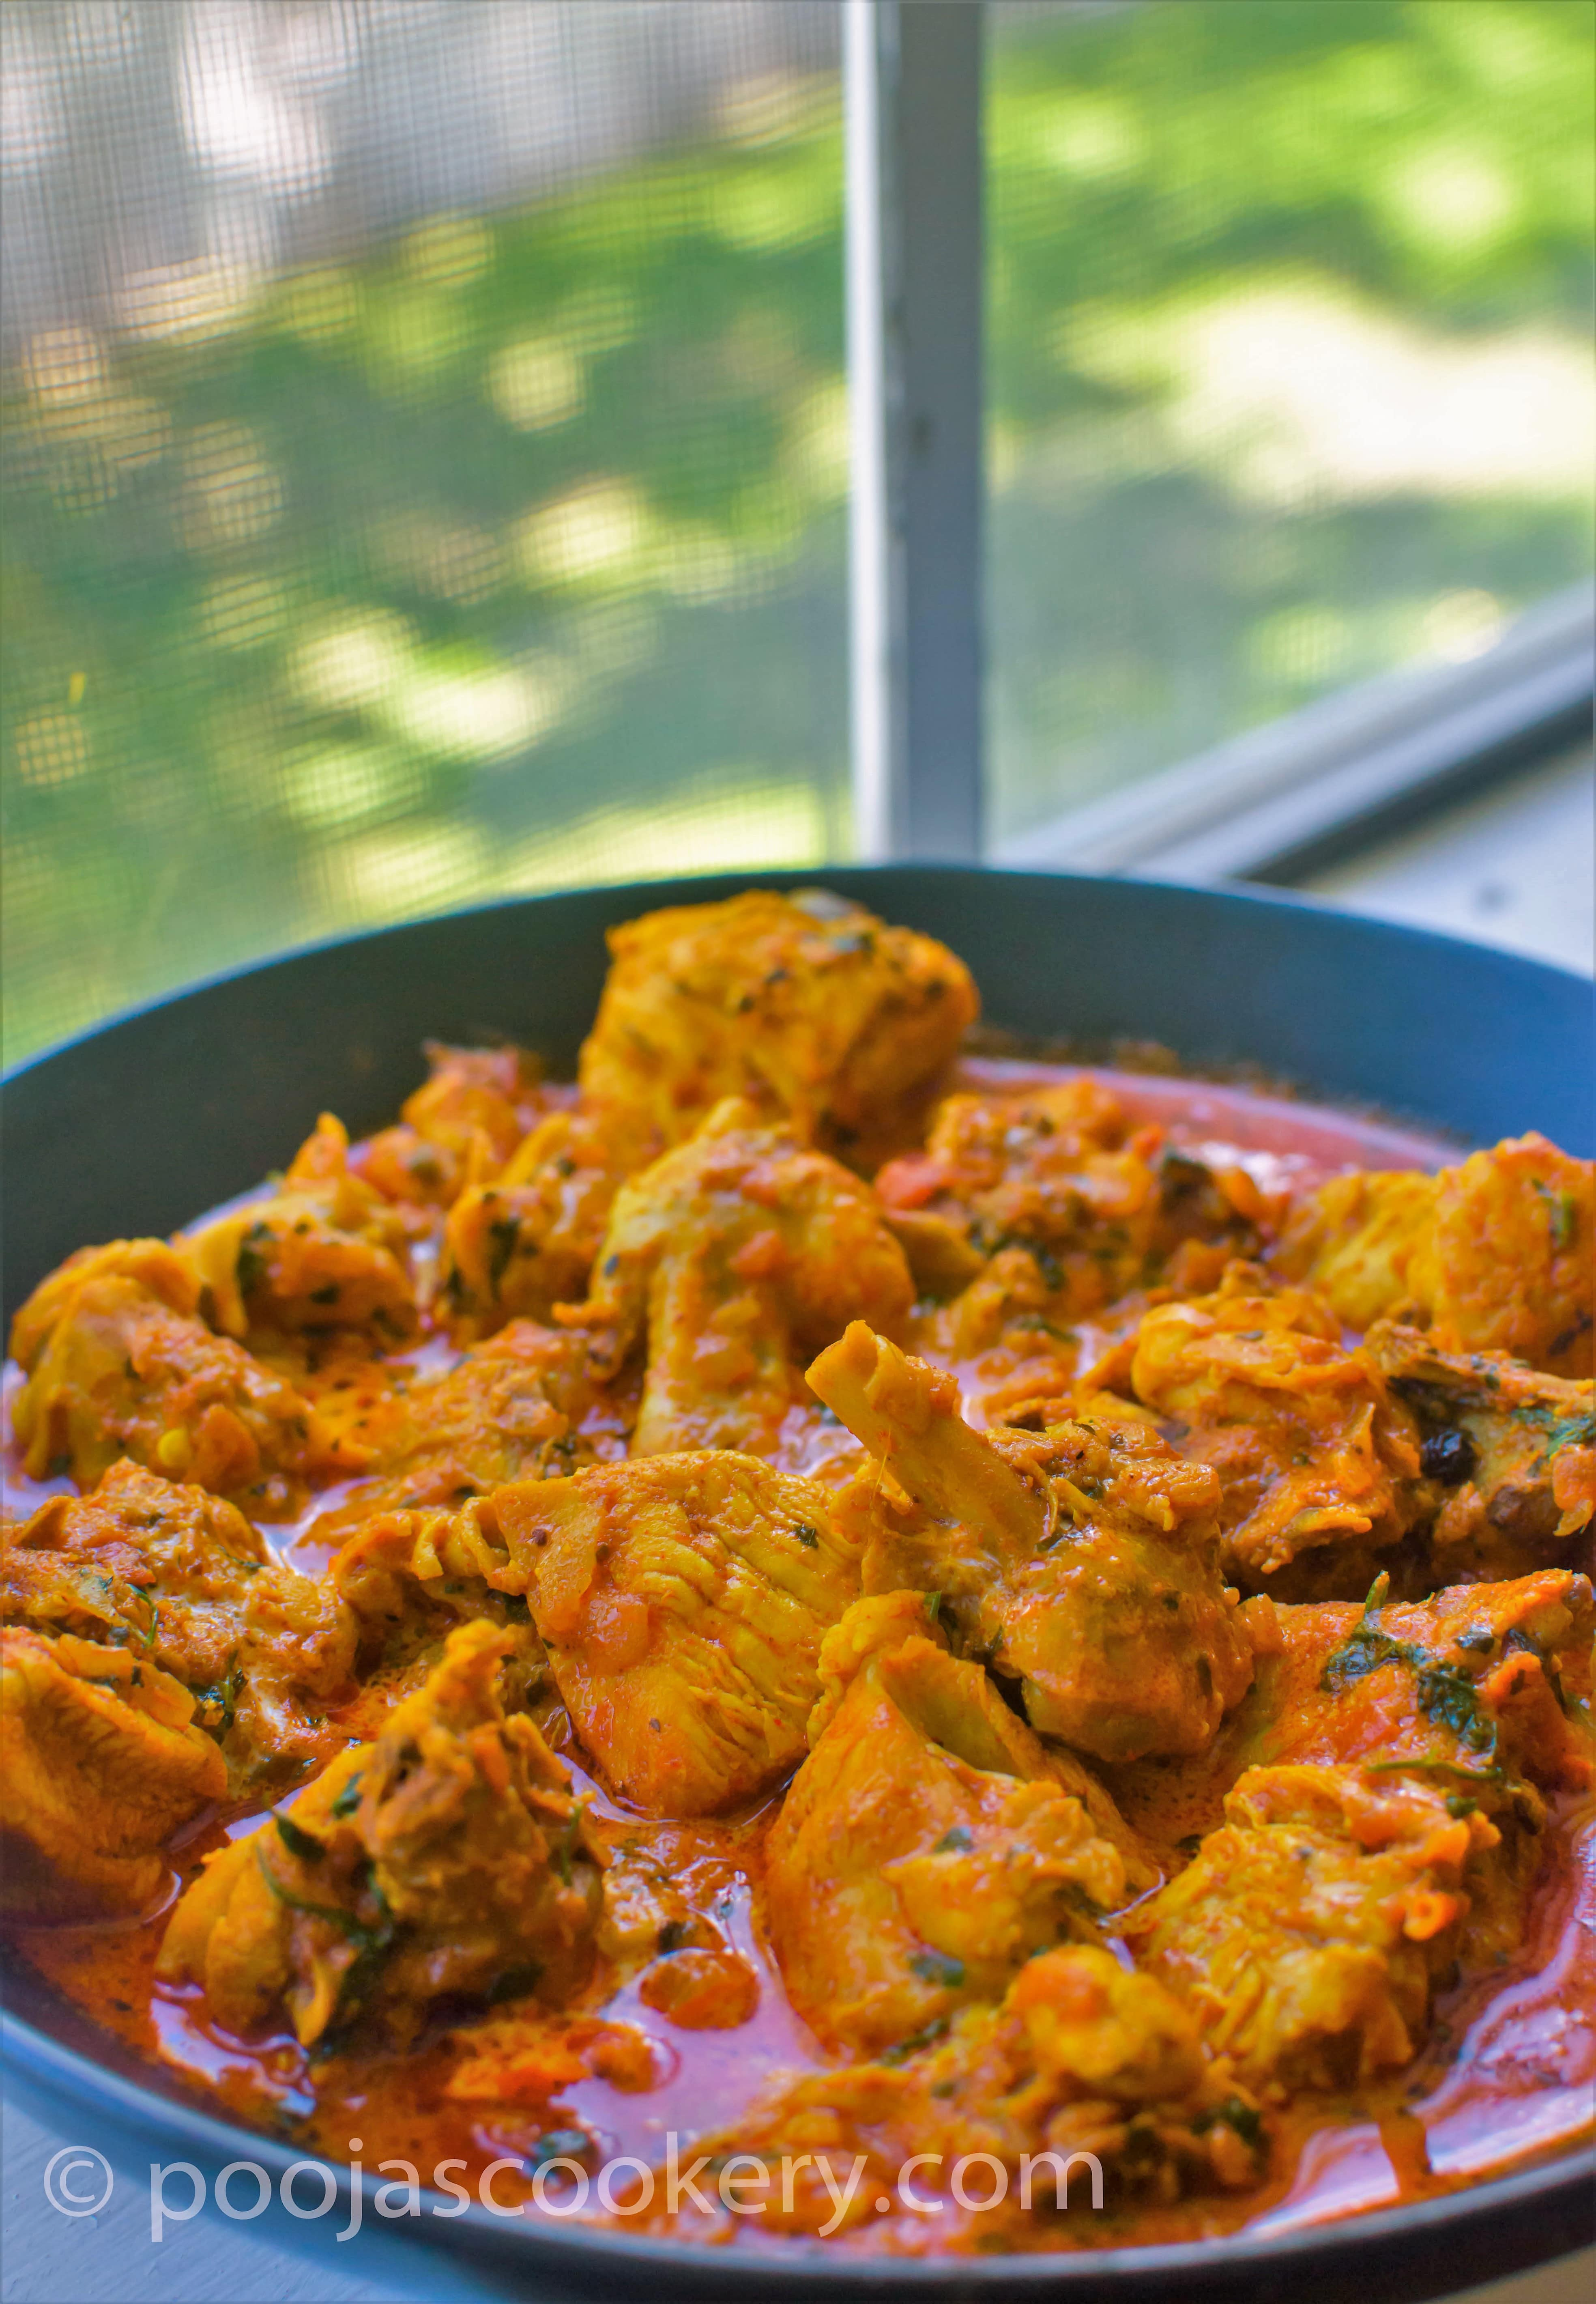 Simple tasty tandoori chicken curry recipe poojas cookery tandoori chicken curry poojascookery forumfinder Image collections